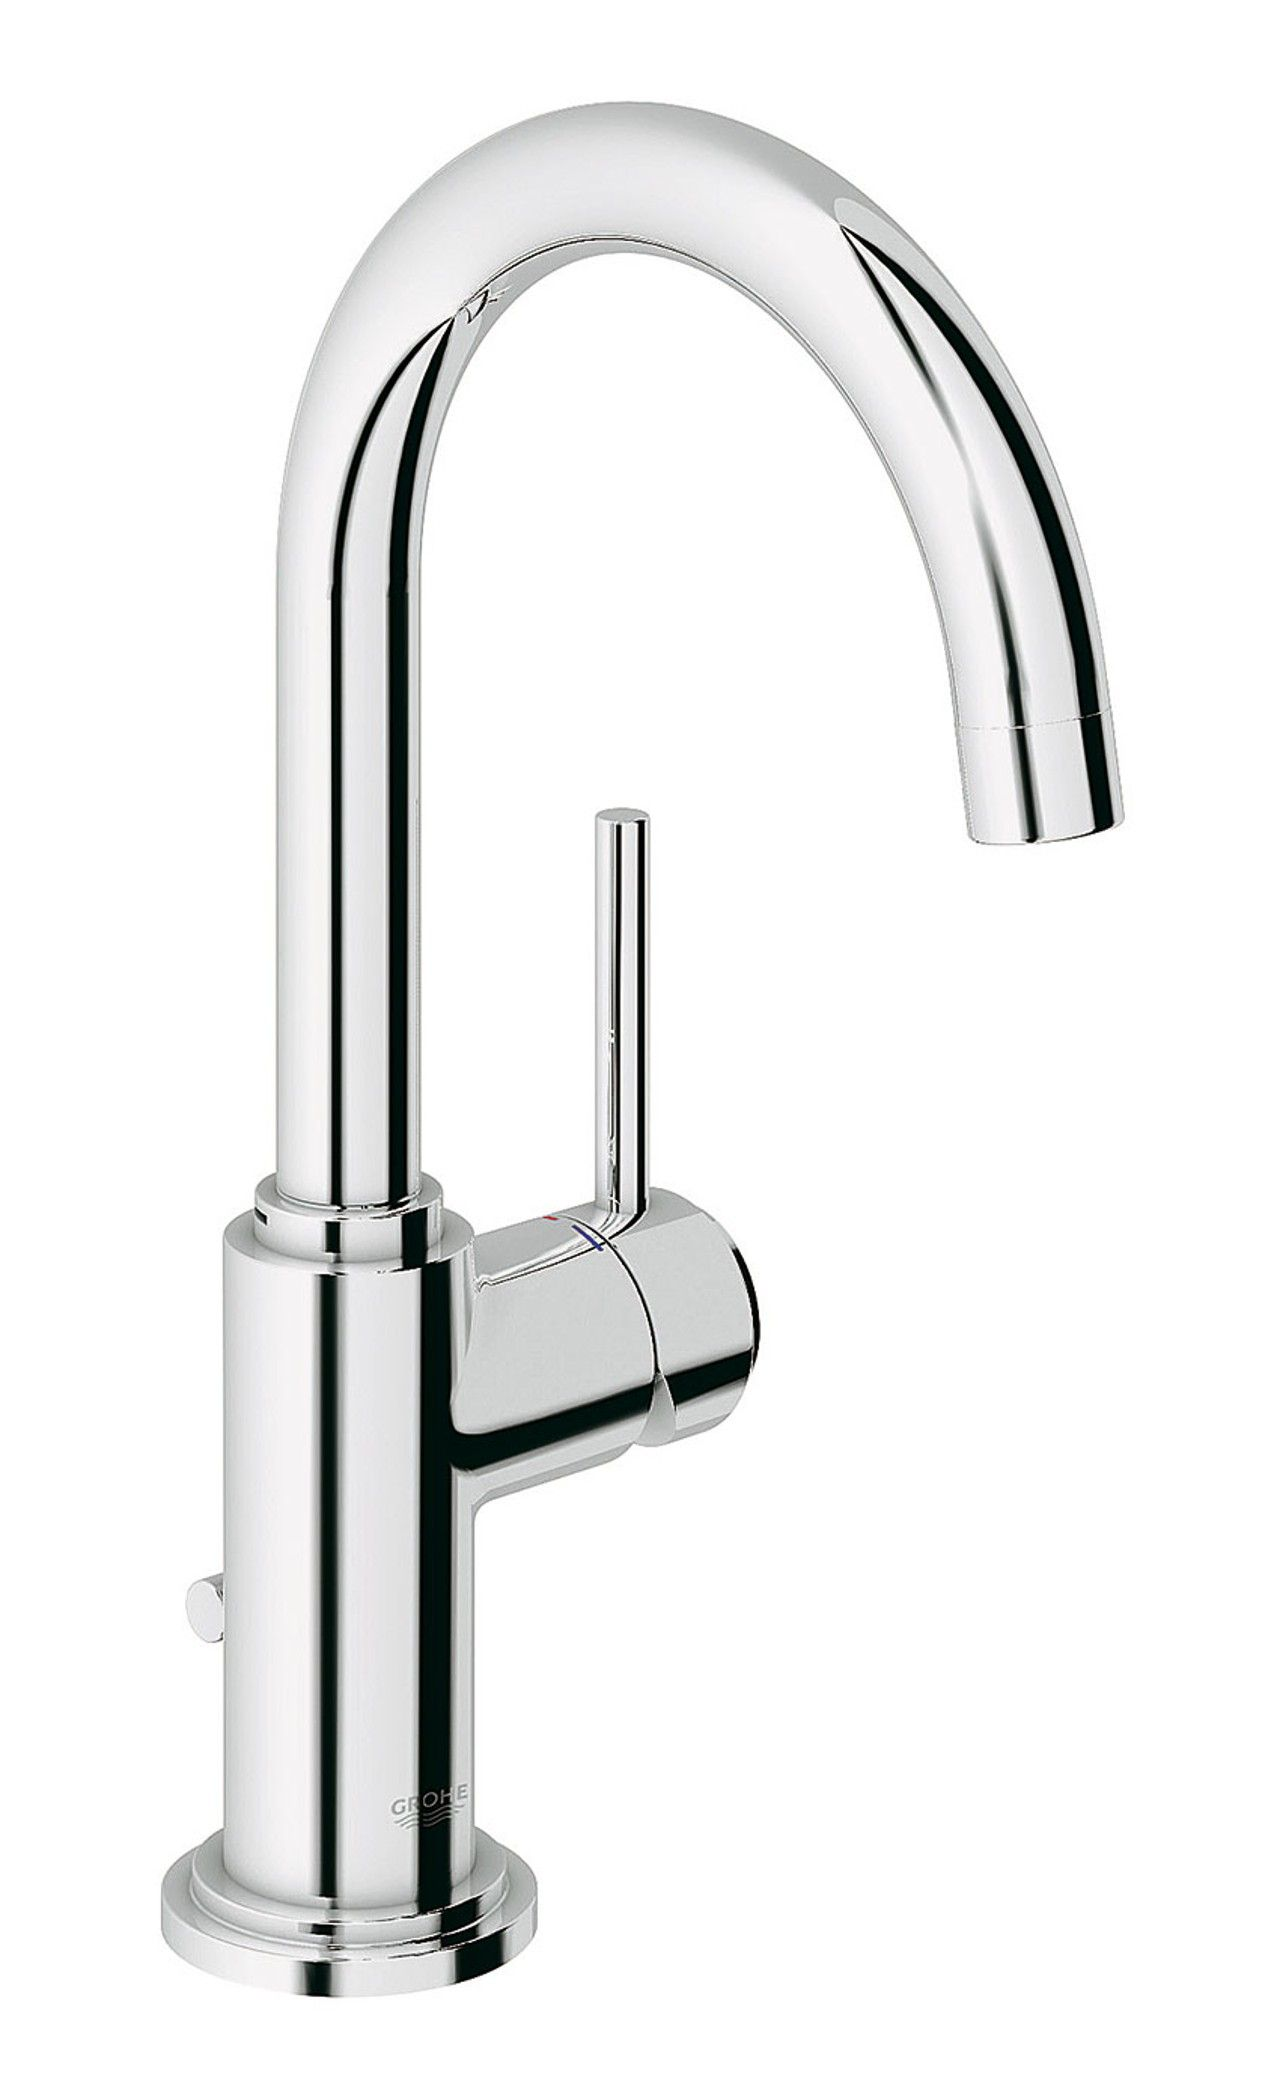 GROHE ATRIO With their classic design the GROHE Atrio faucets echo